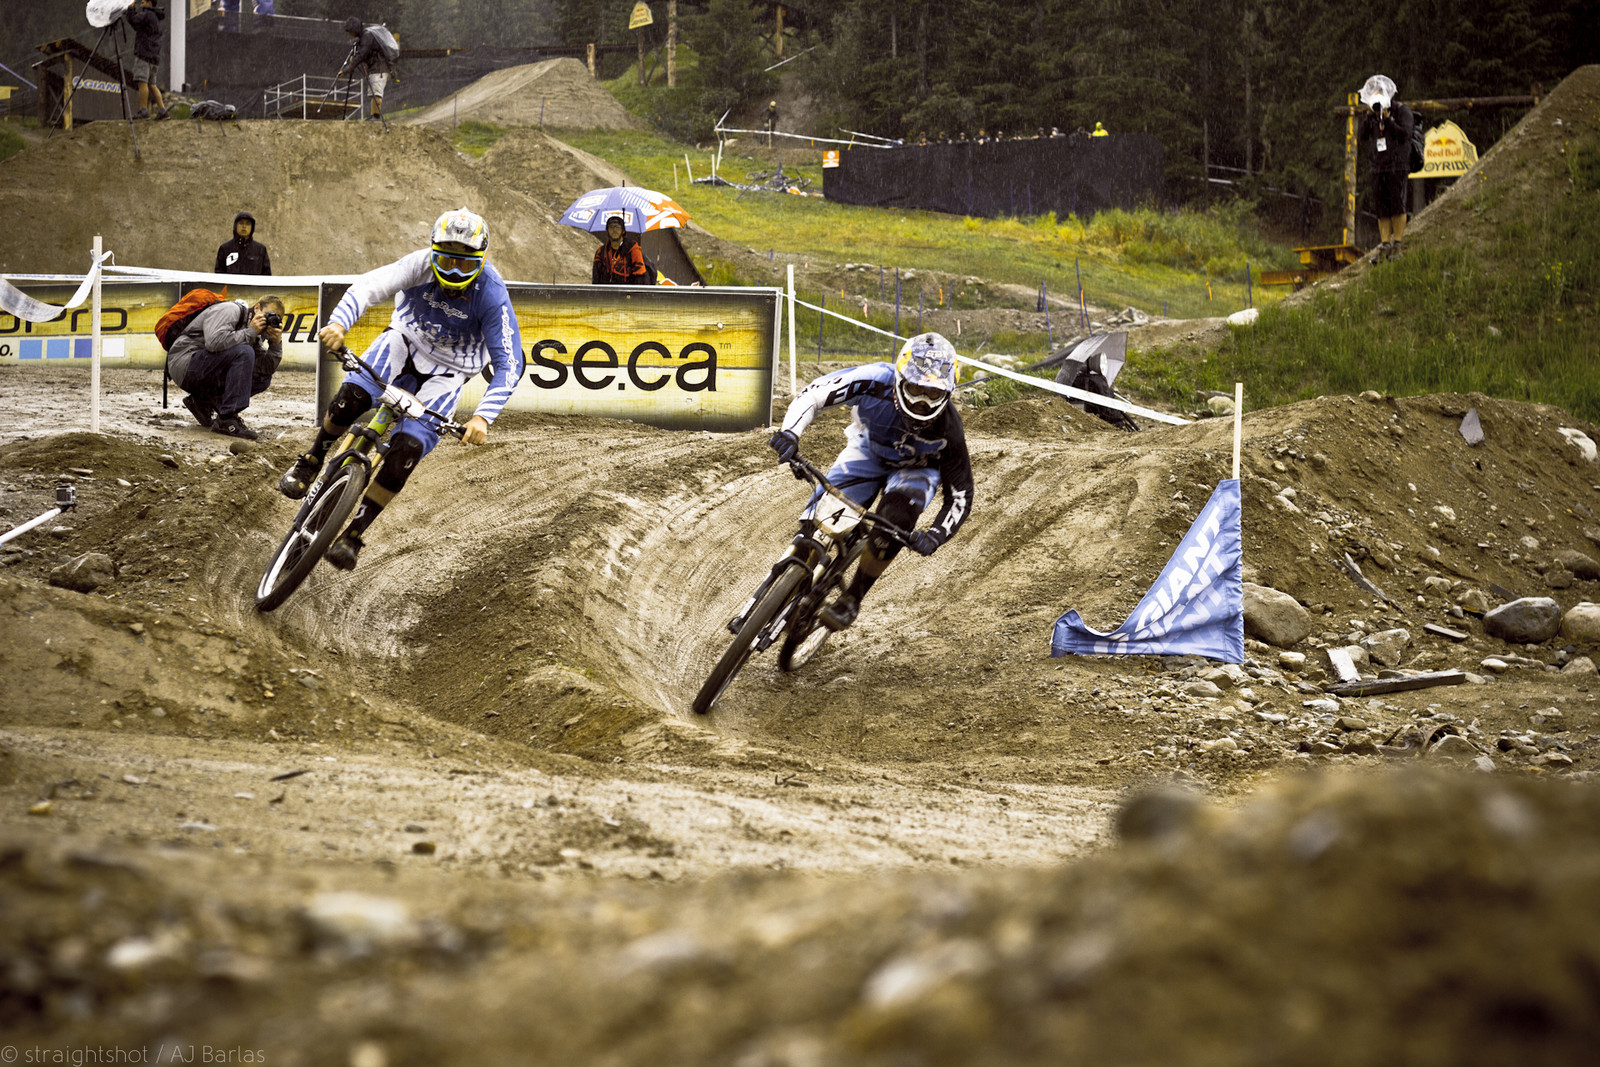 Brendon Fairclough was Knocked out to Early - Crankworx Slalom 2013 - Mountain Biking Pictures - Vital MTB